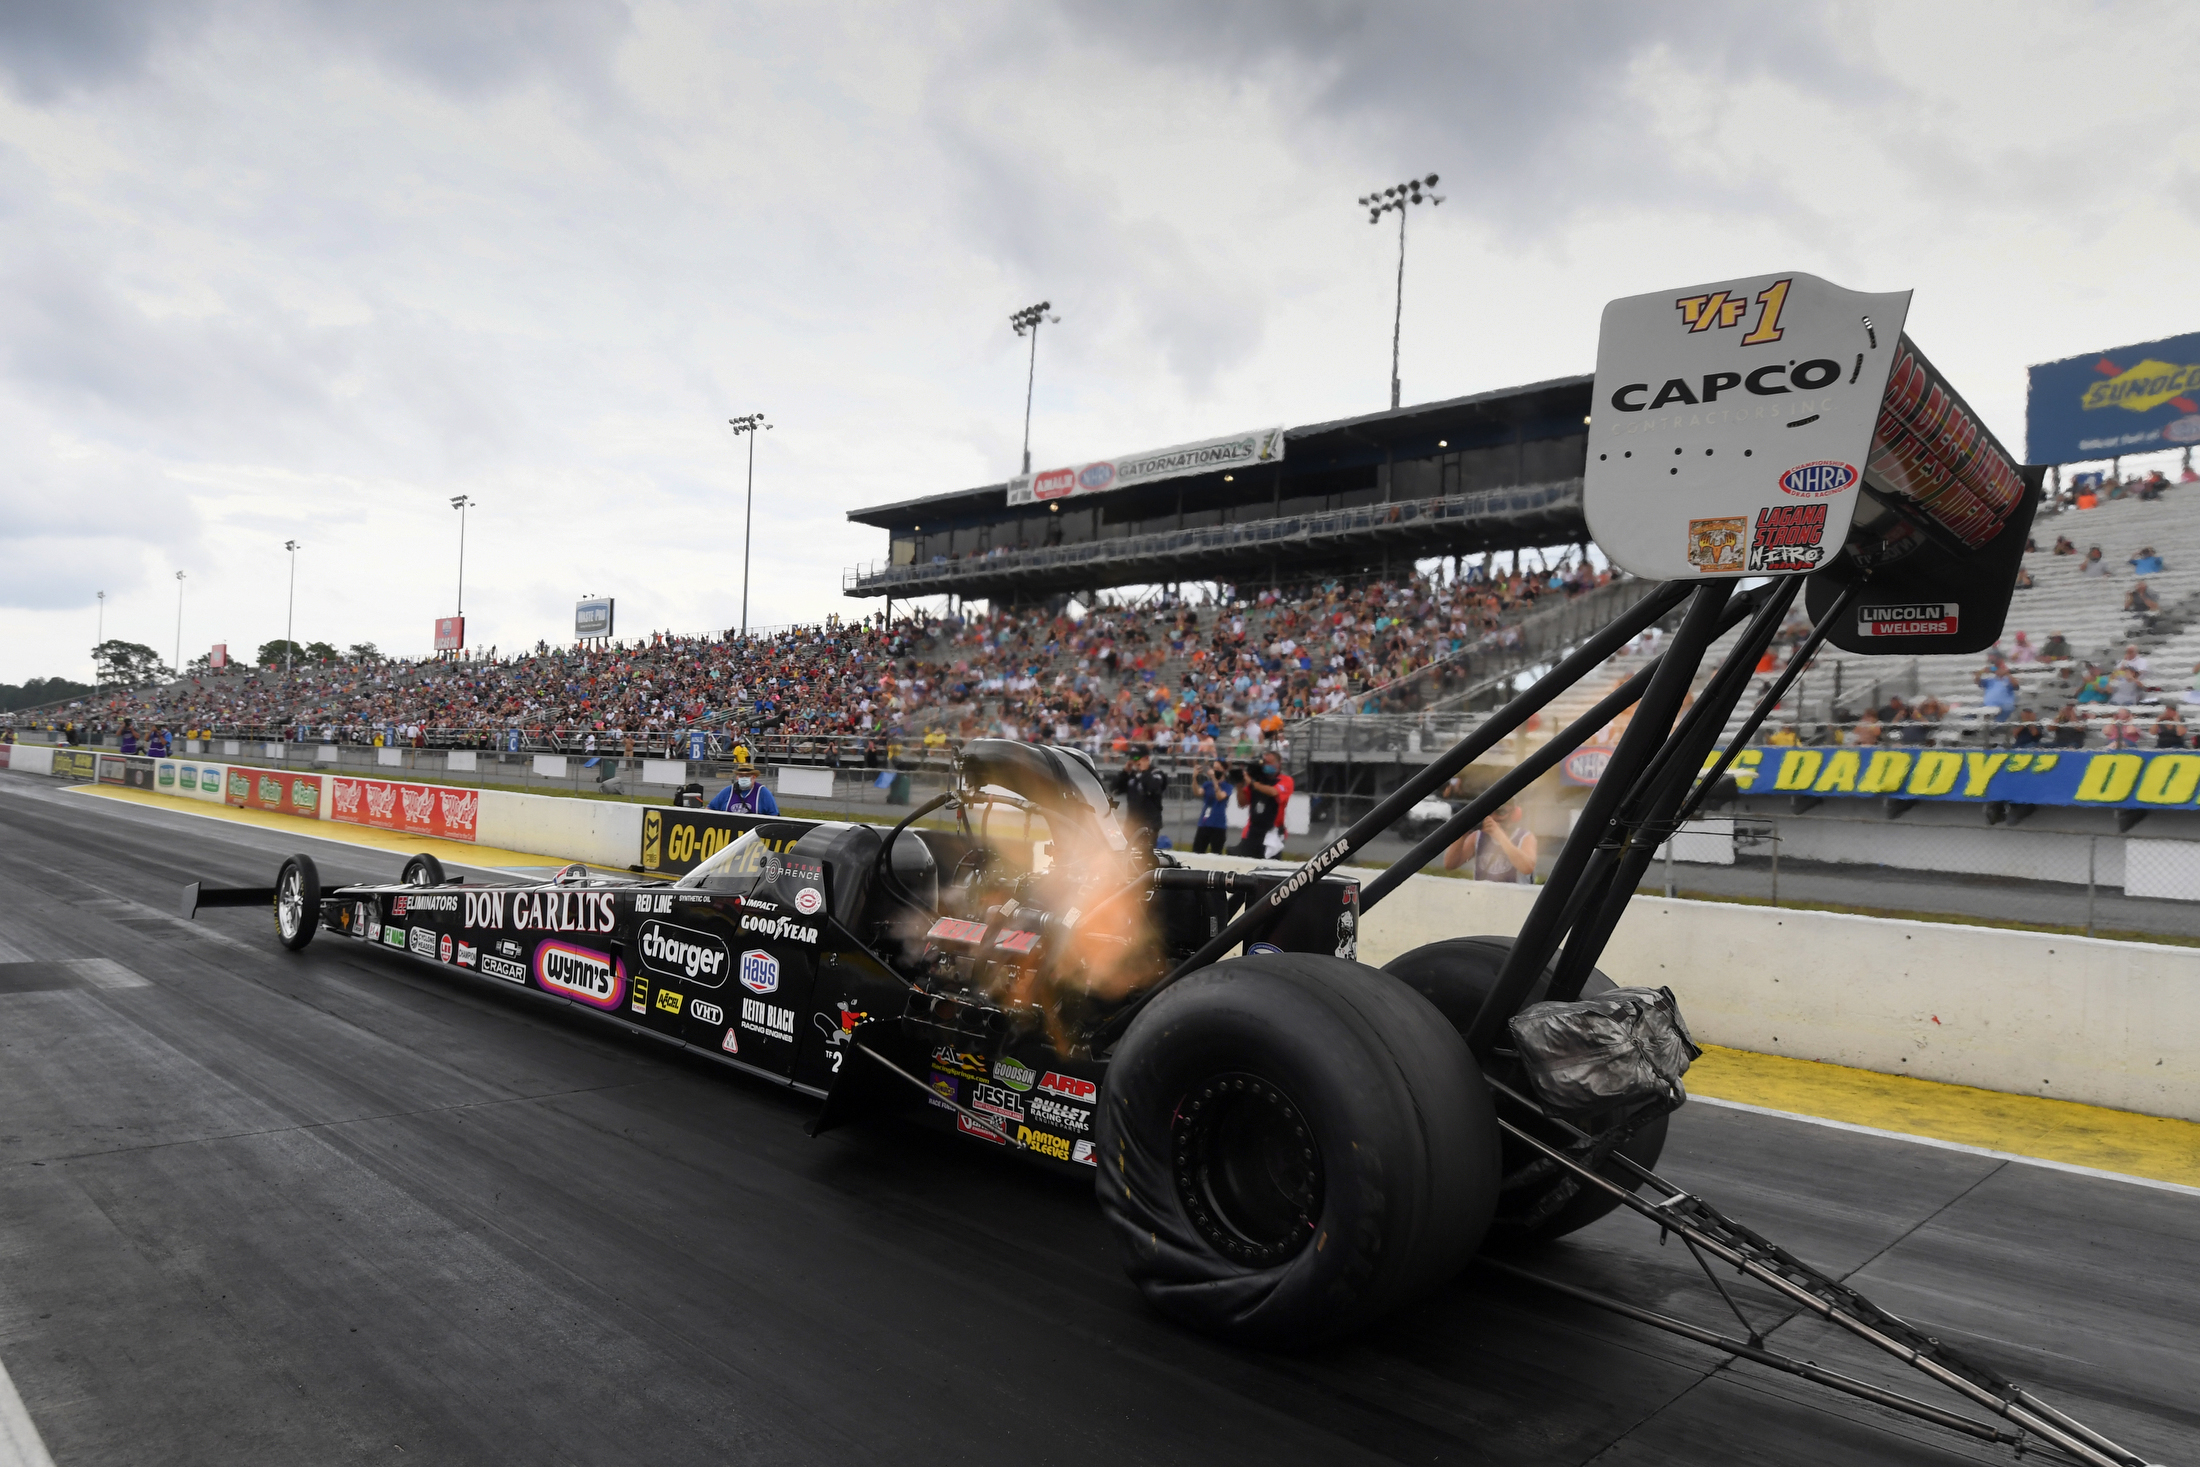 Capco Contractors Top Fuel Dragster pilot Steve Torrence racing on Sunday at the Amalie Motor Oil NHRA Gatornationals